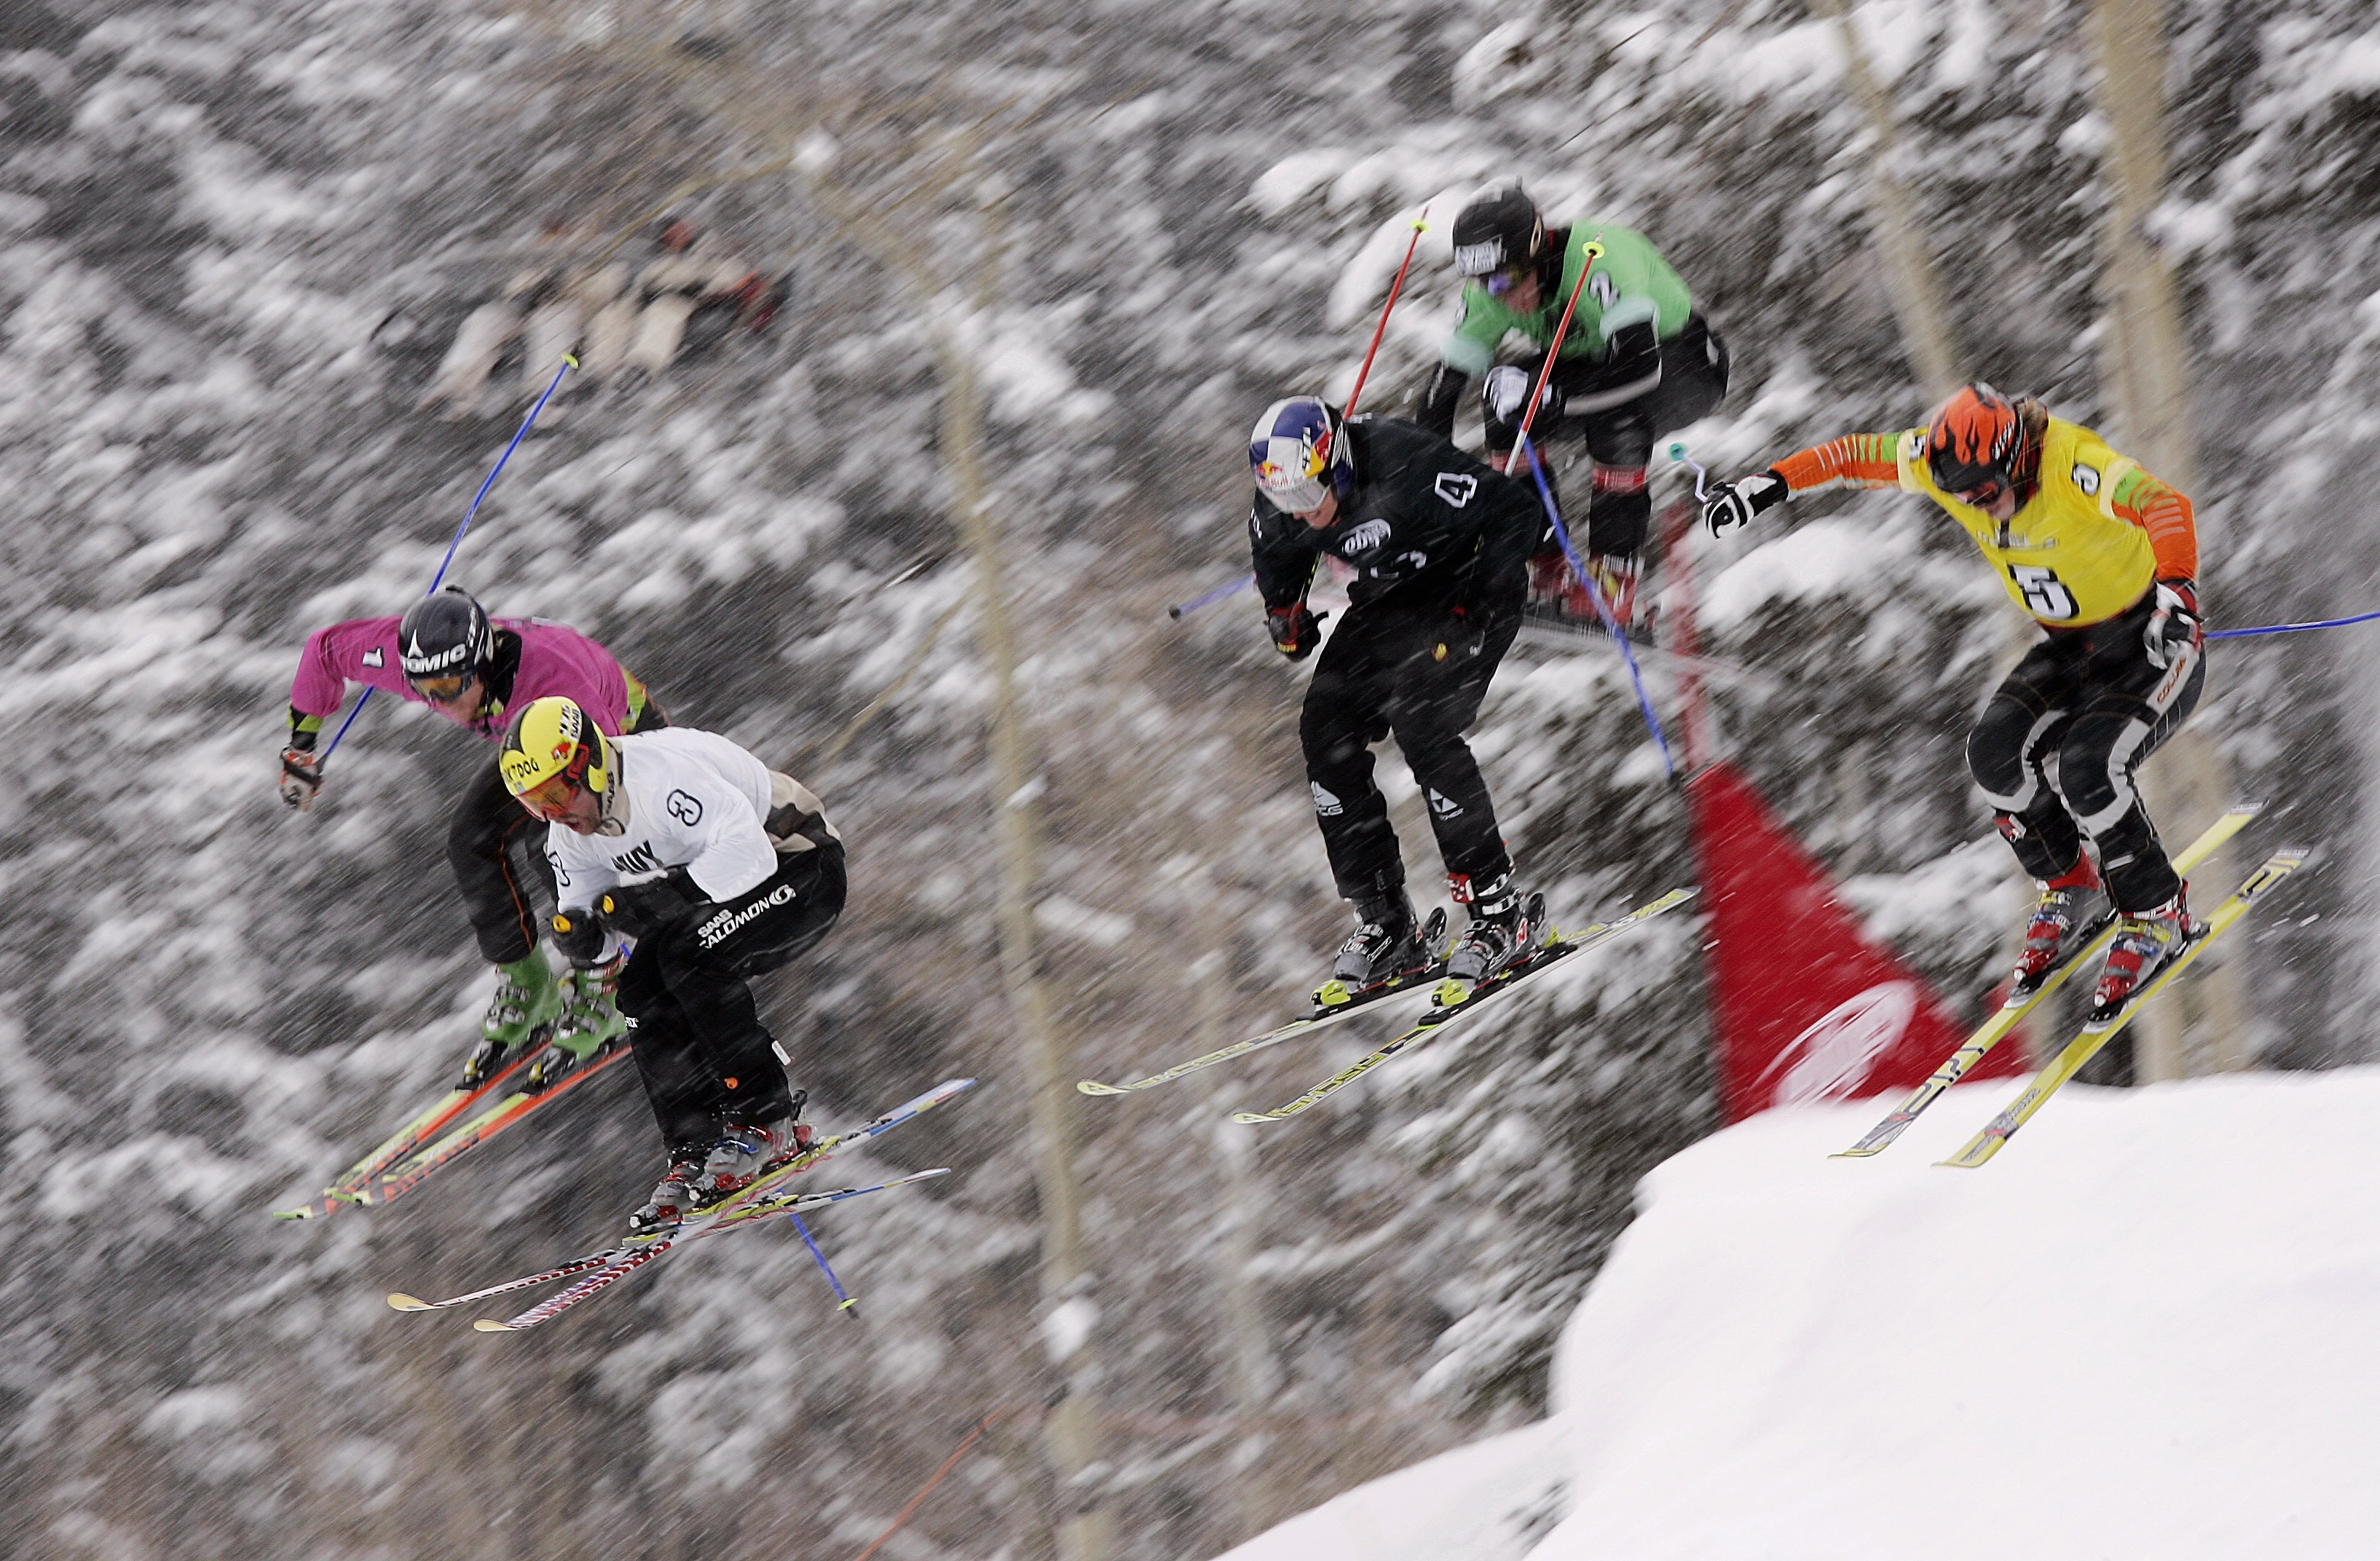 ASPEN, CO - JANUARY 29:  Lars Lewen, Reggie Crist, Chris Del Bosco, Tomas Kraus, Zach Crist and Casey Puckett take off a jump in the finals of Men's Skier X during Winter X Games 10 on January 29, 2006 at Buttermilk Mountain in Aspen, Colorado.  (Photo by